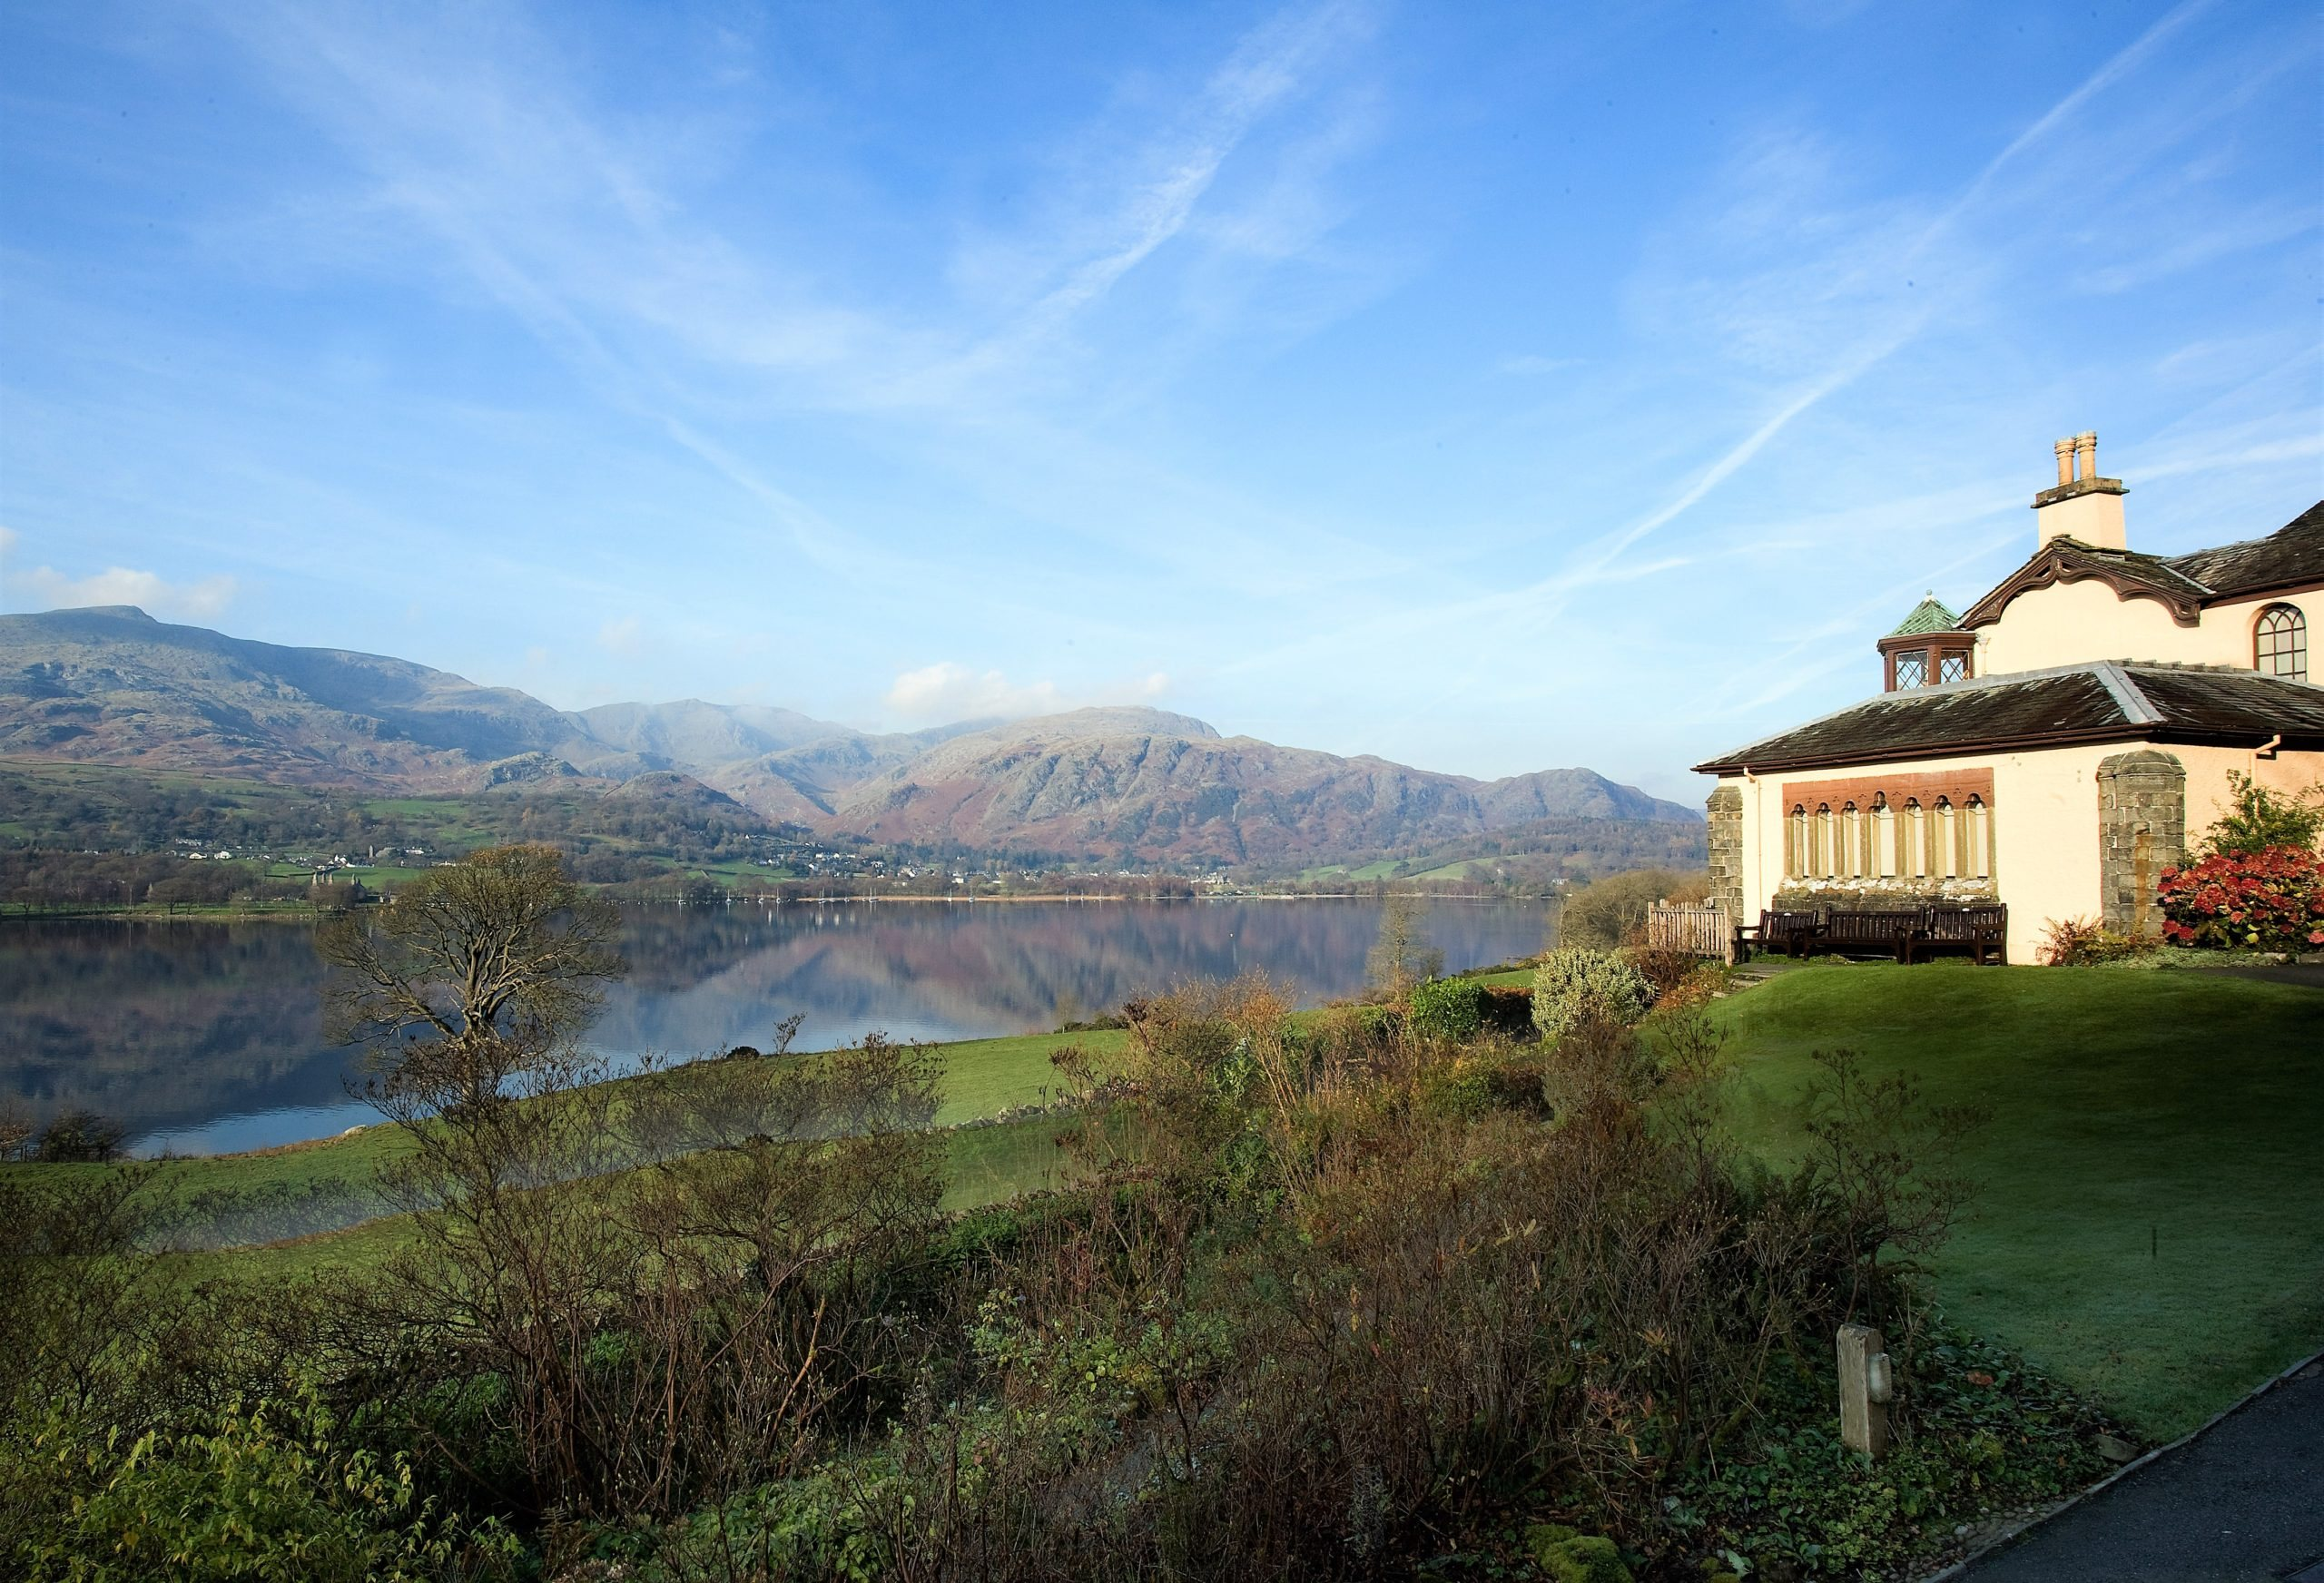 Image of Brantwood, home of John Ruskin on the East shore of Coniston Water